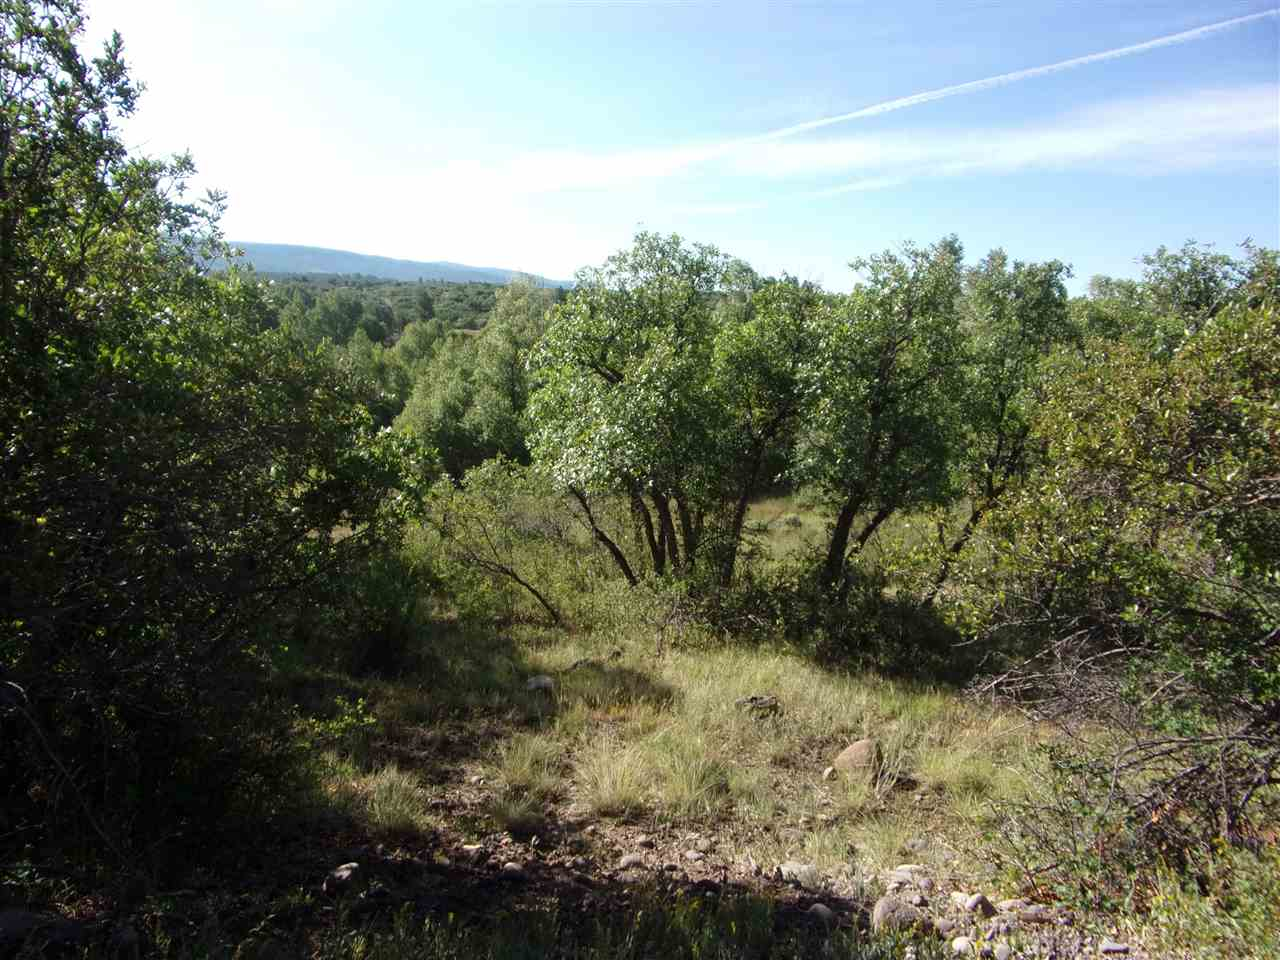 Eagle View Tract Larkspur Way Chama, NM 87520